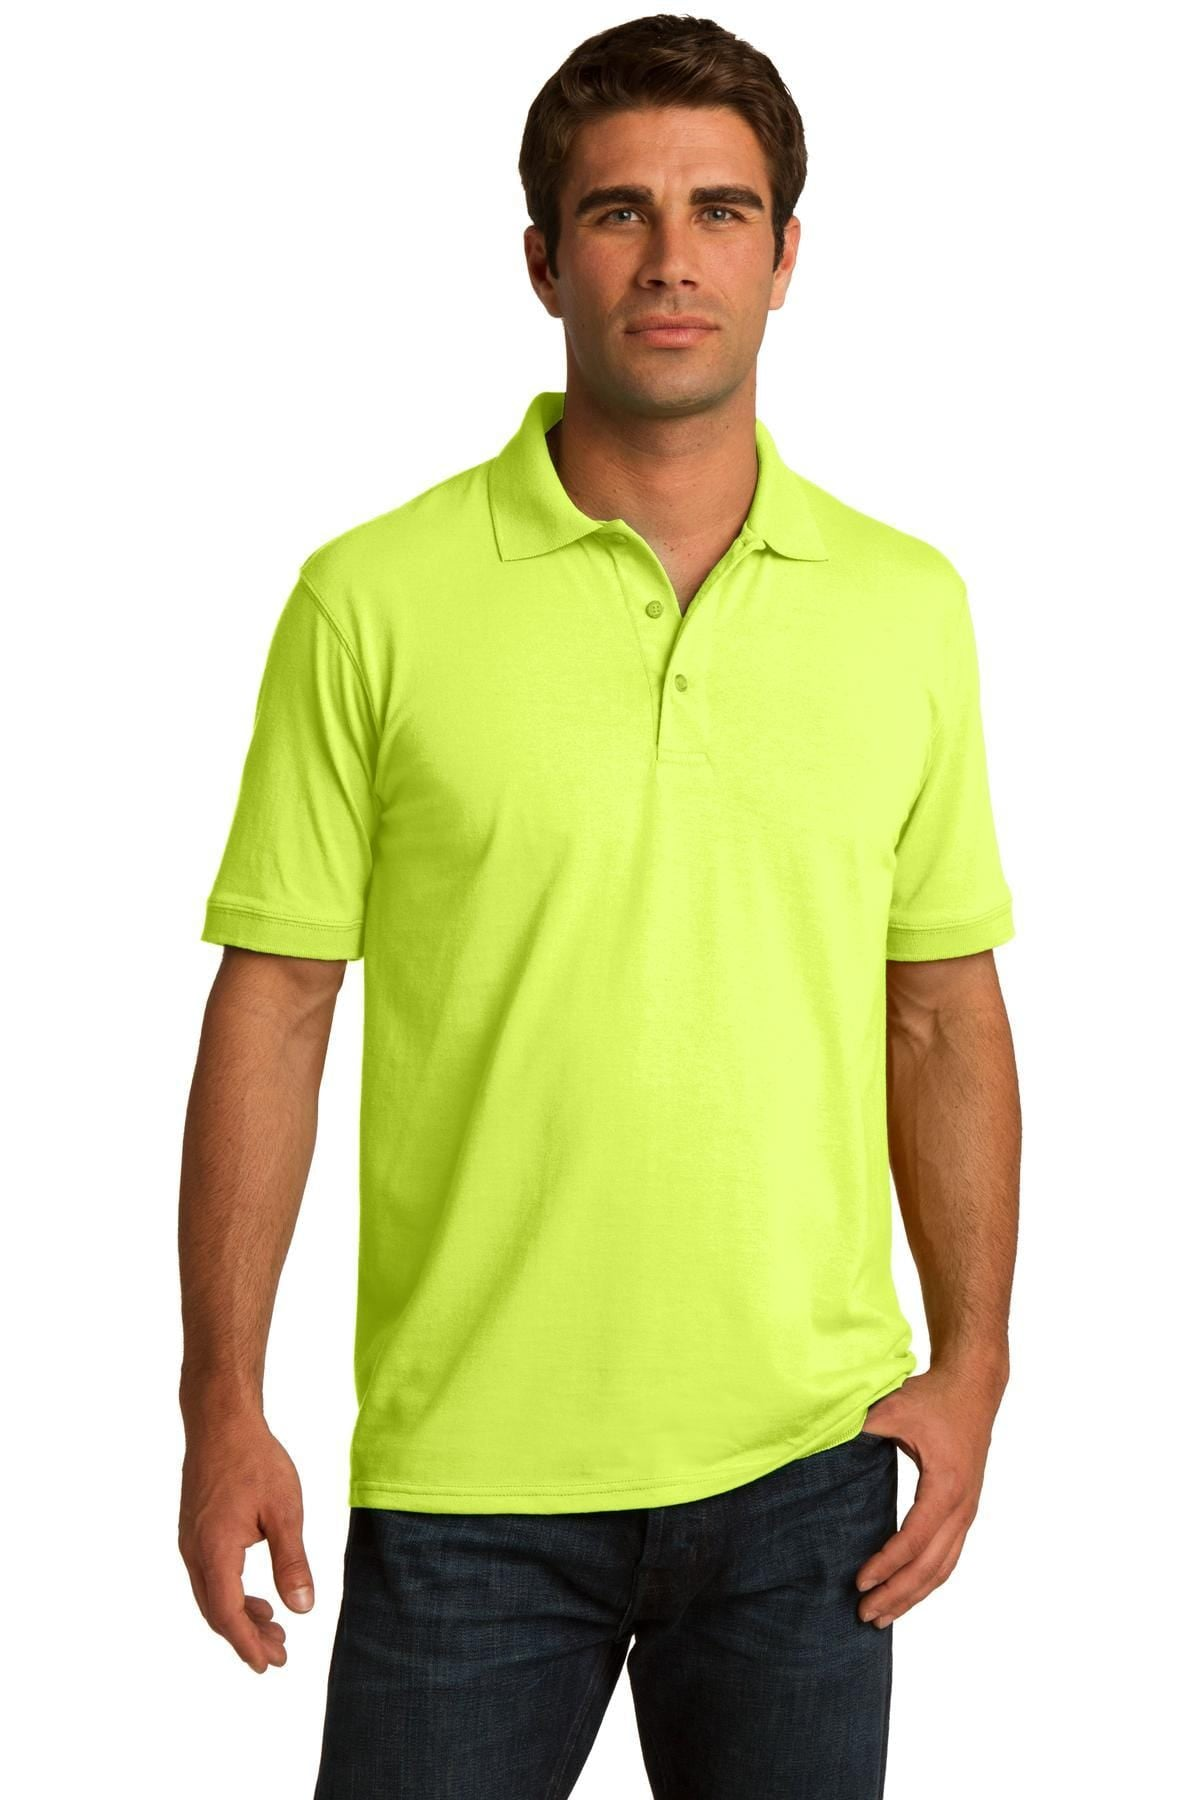 Port & Company ® Tall Core Blend Jersey Knit Polo. KP55T, Basic Colors-Polos/Knits-wholesale apparel